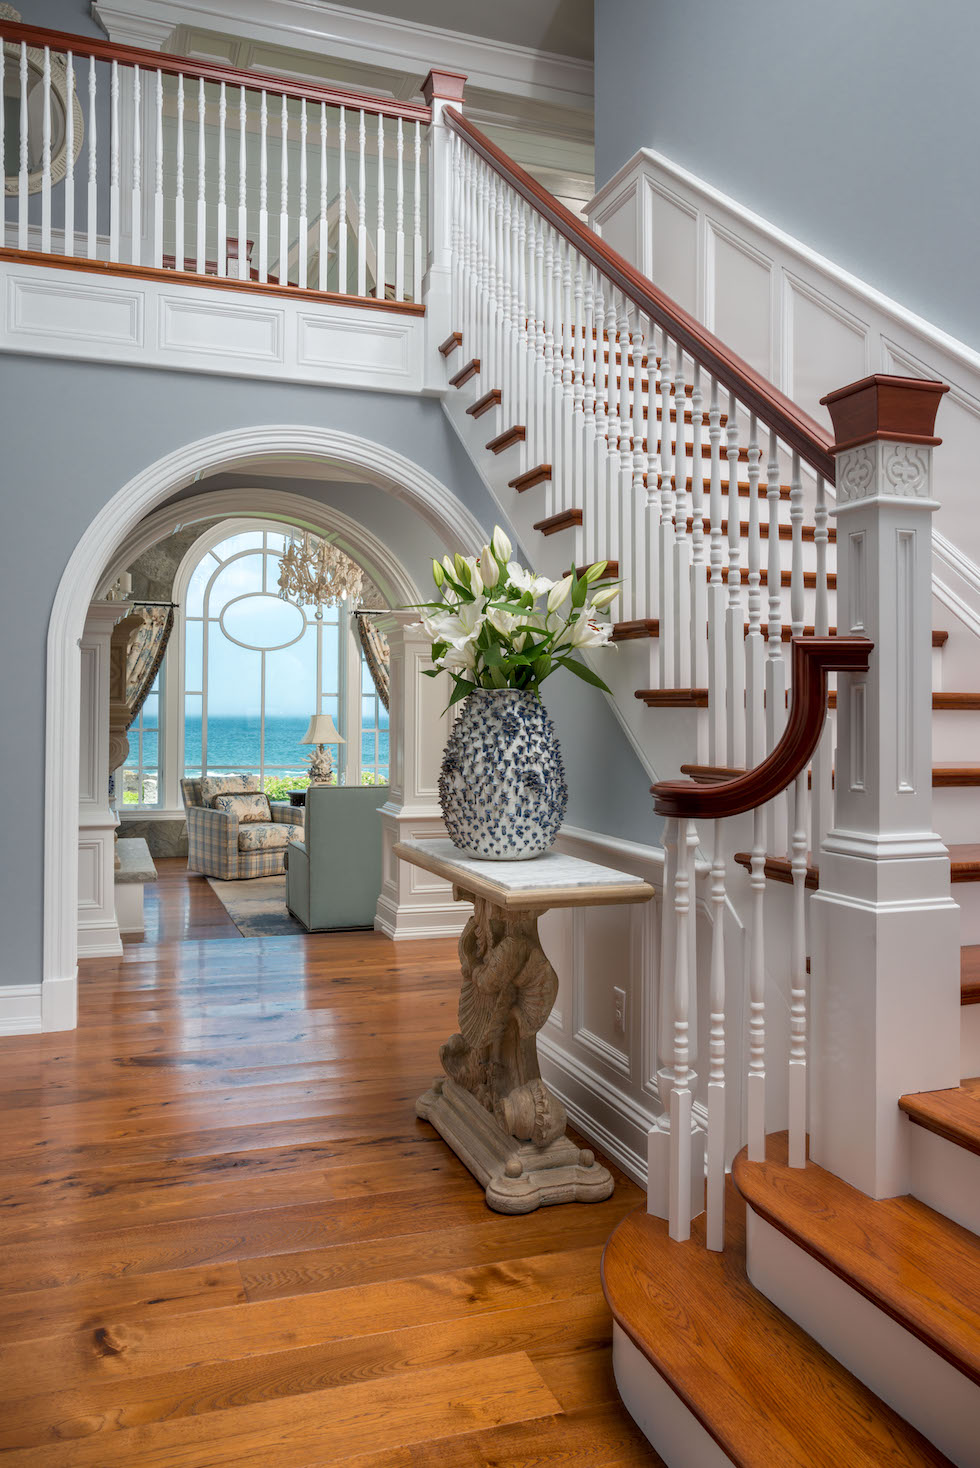 How to Add Classic Charm with Wide Plank Hardwood Flooring